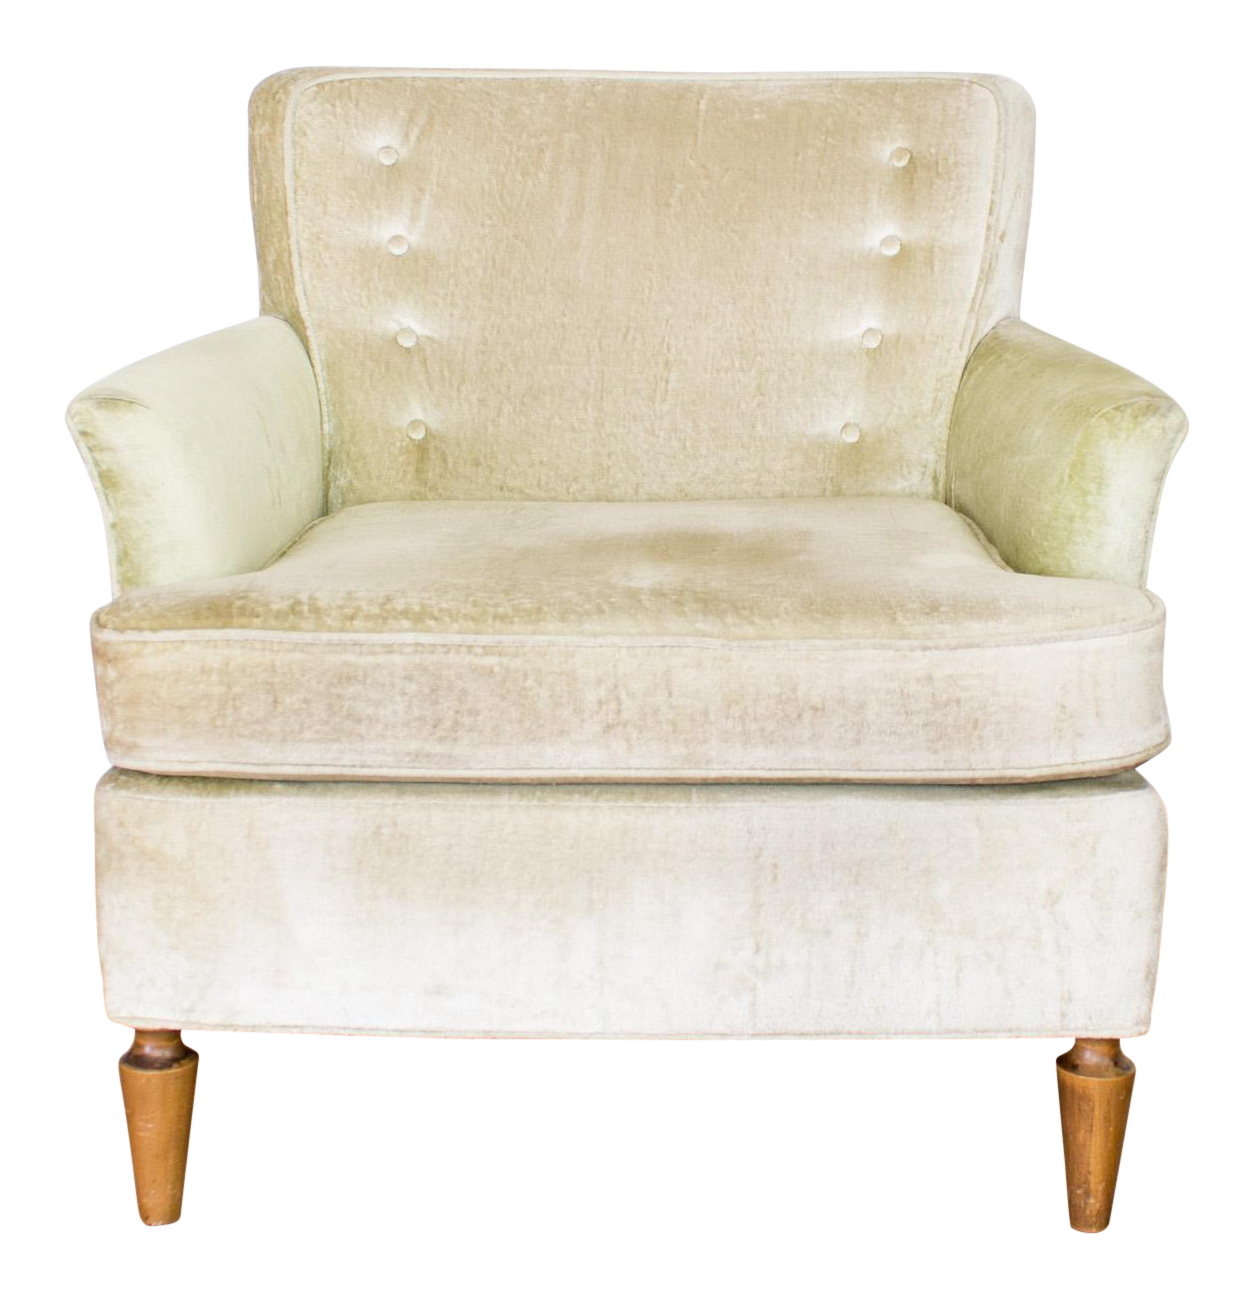 Mid Century Club Chair In Pale Green Velvet Tufted Back Cushion And Chairish